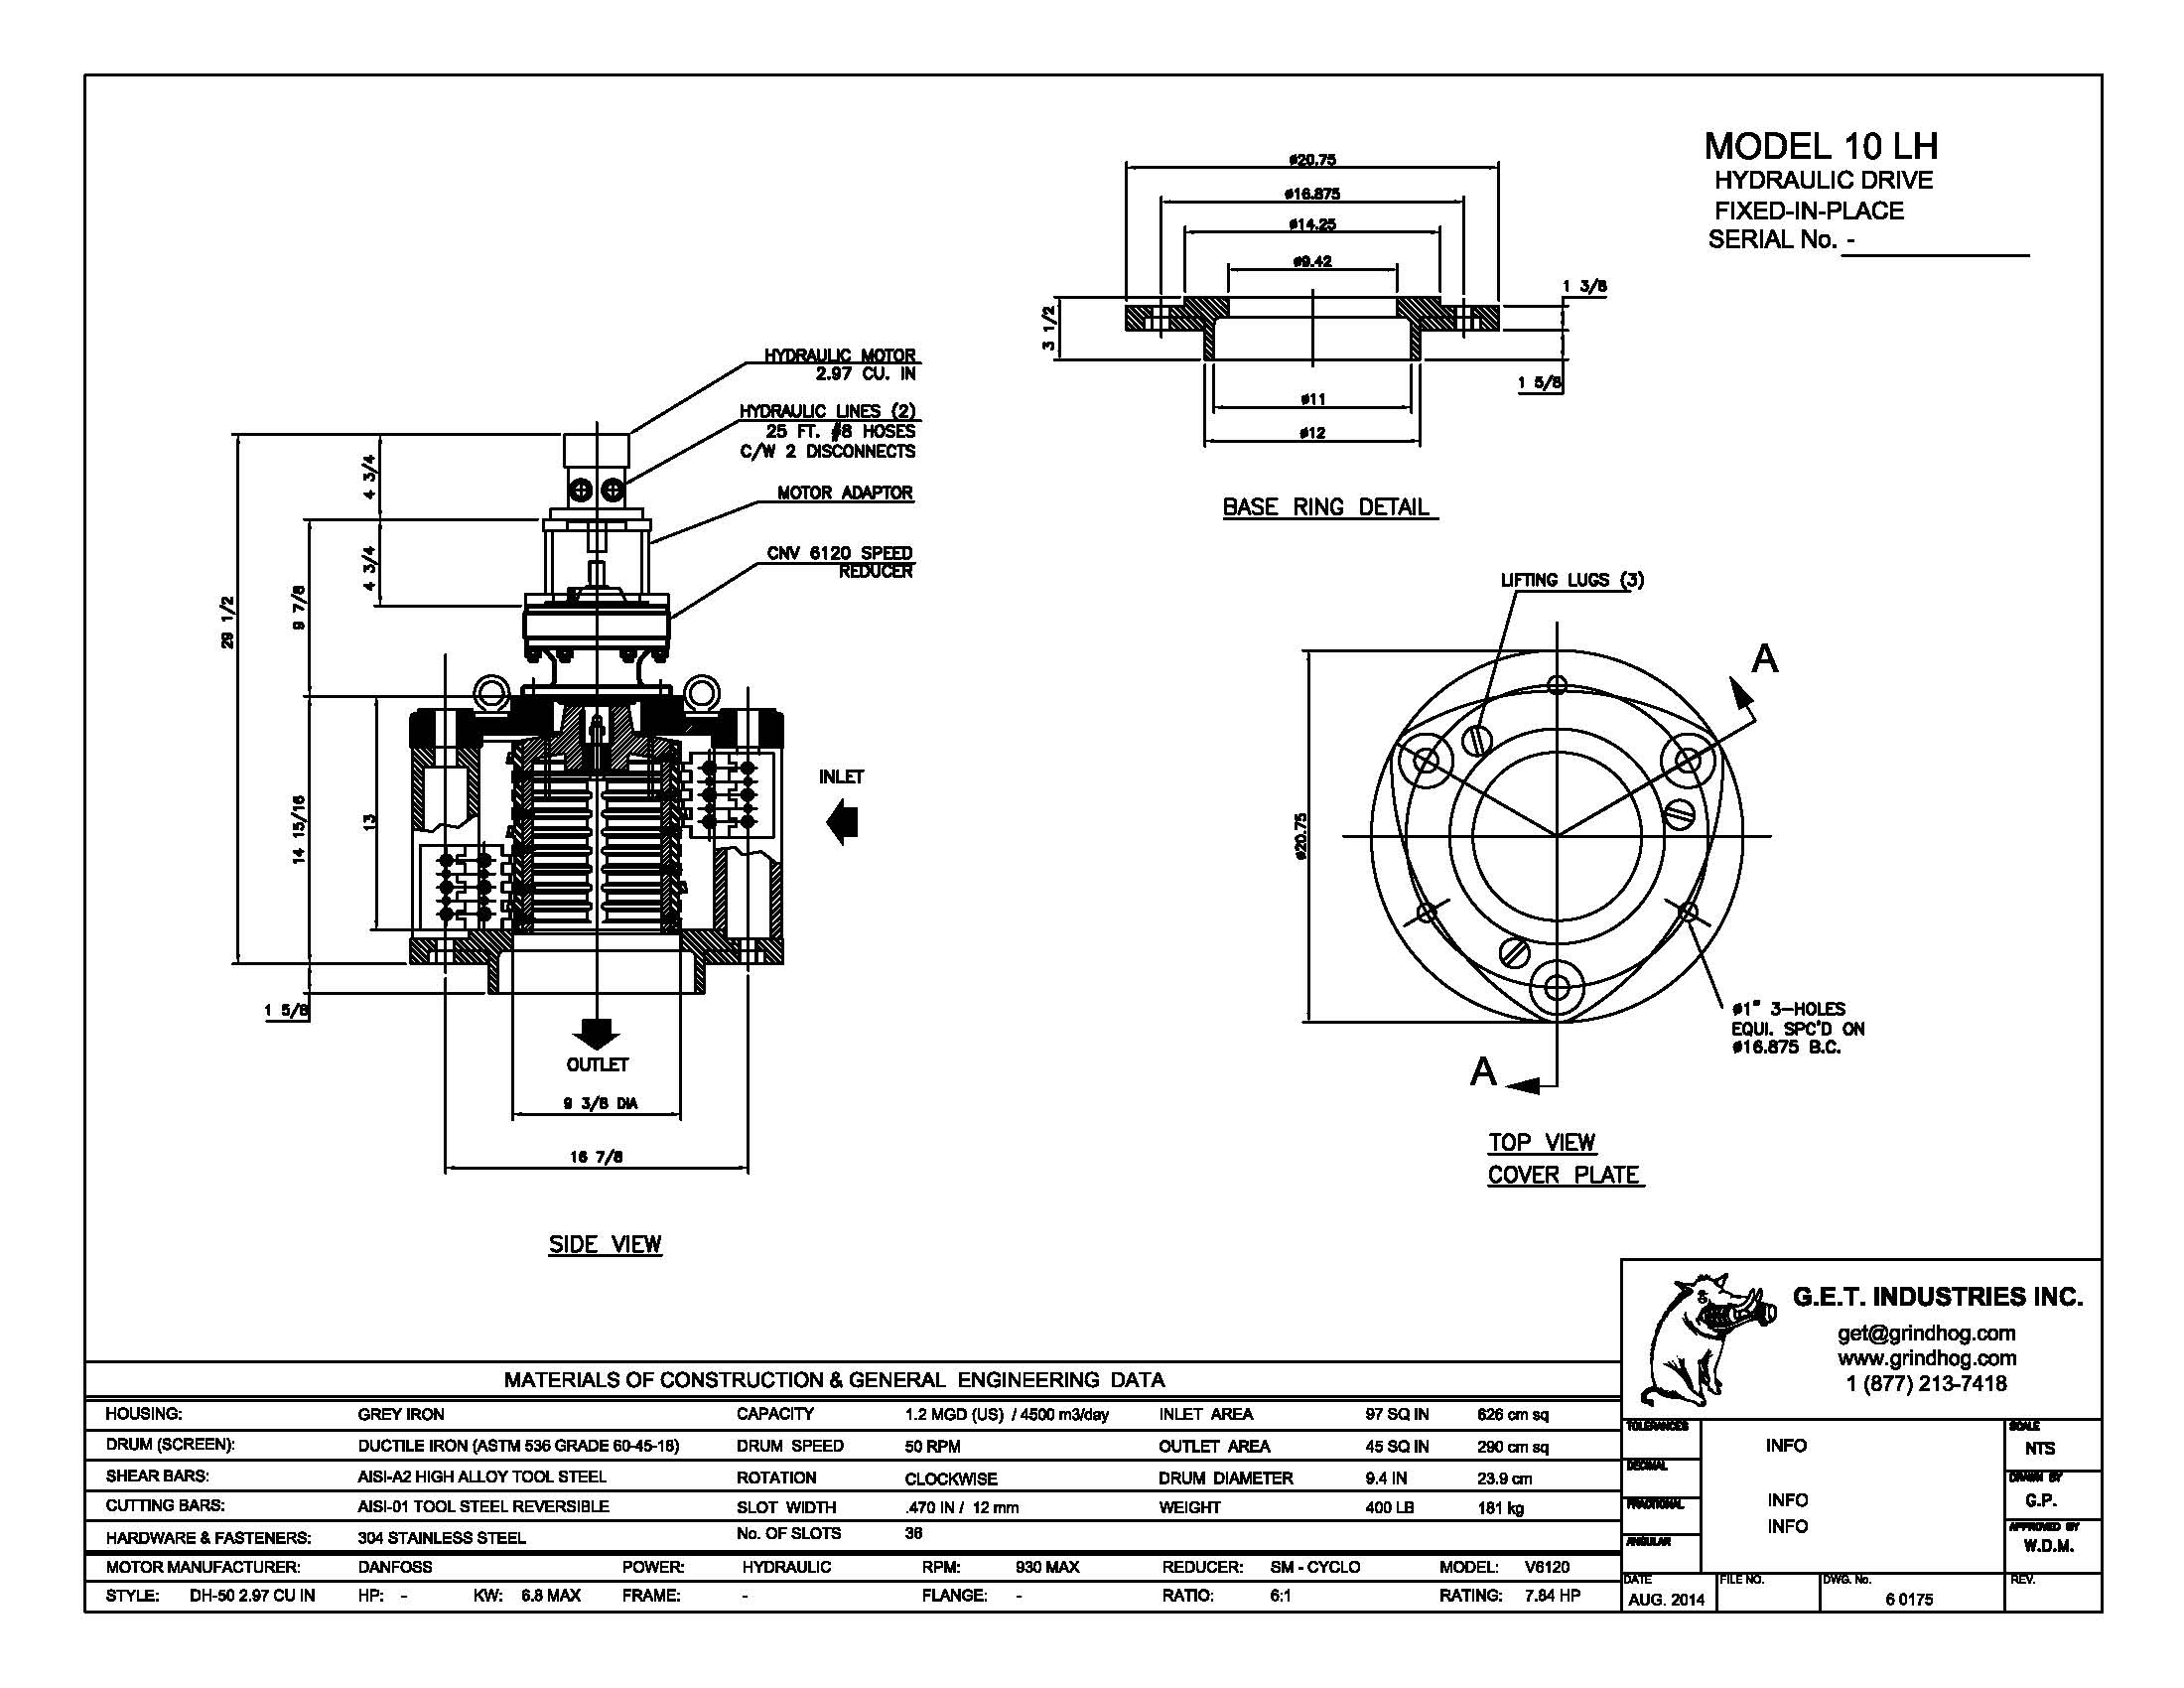 data drawing for Model 10LH